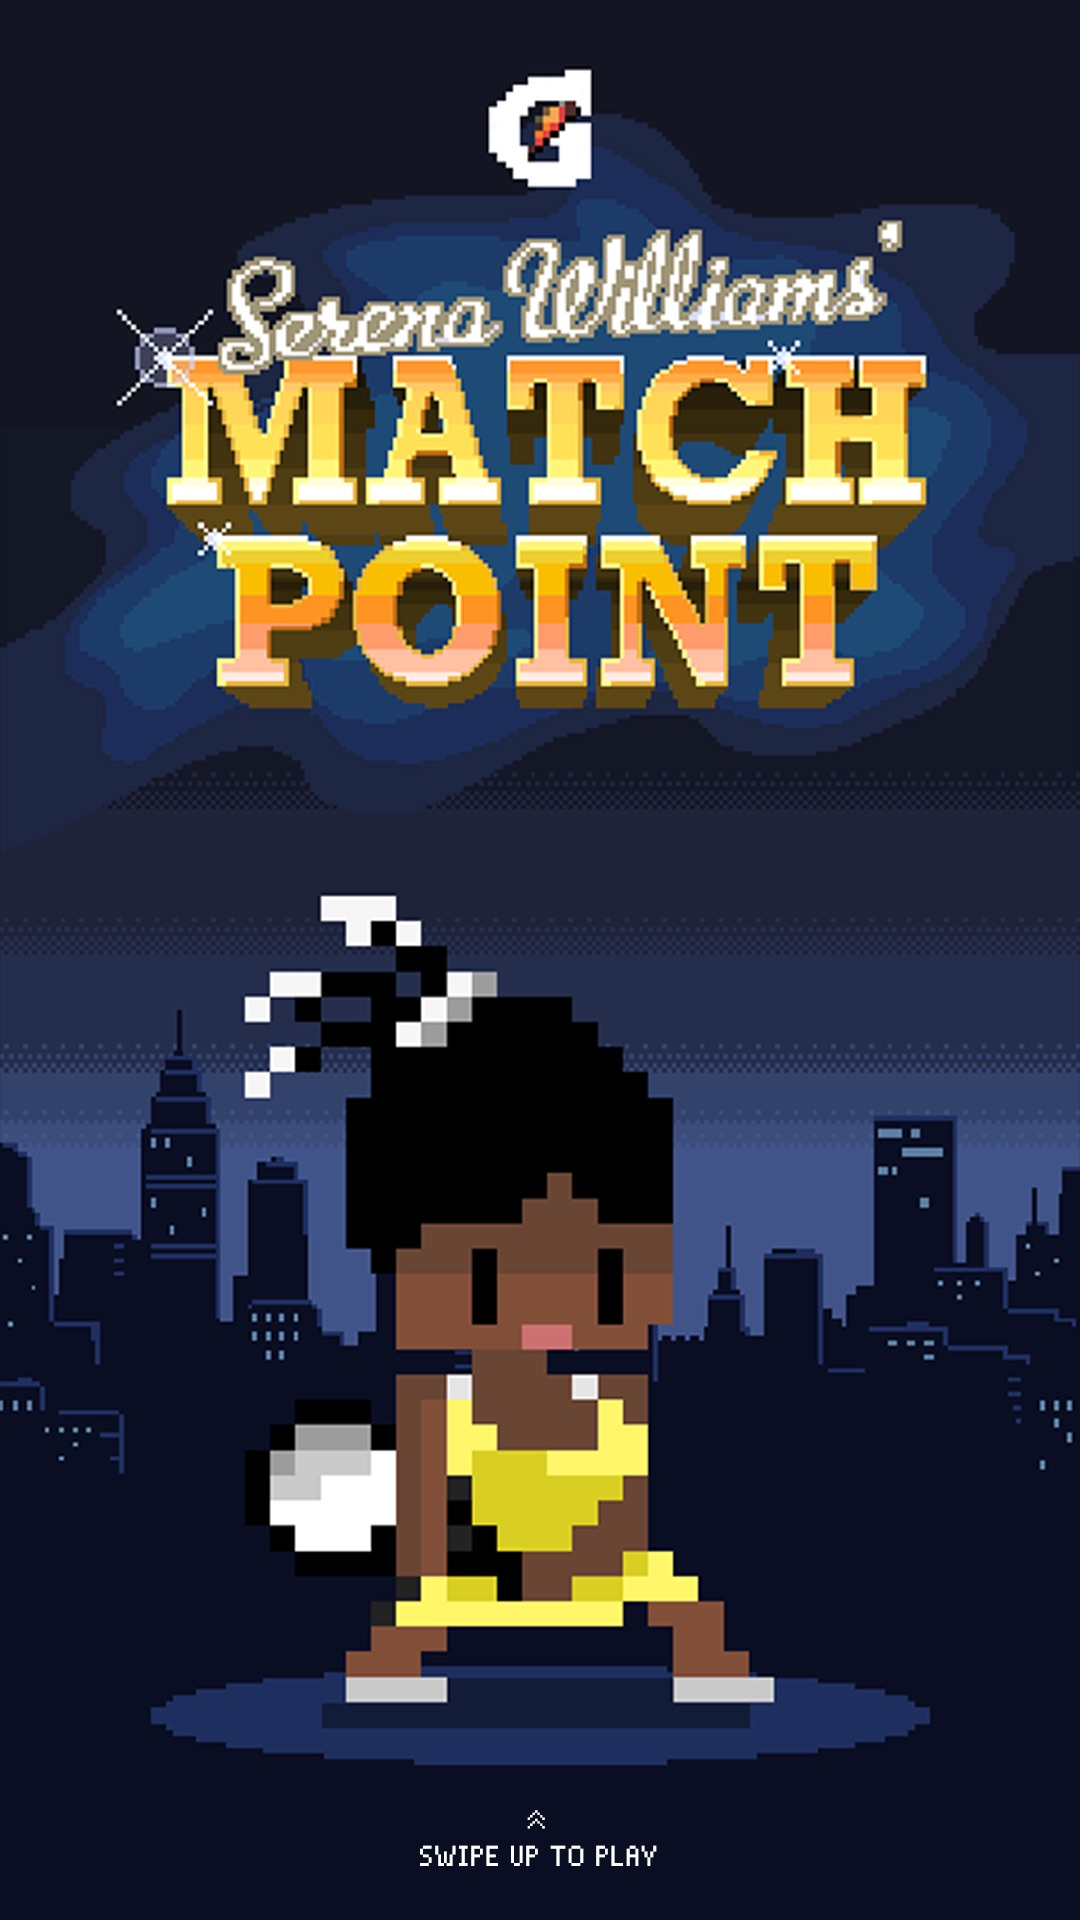 Thumbnail for Serena Williams' Match Point | Gatorade